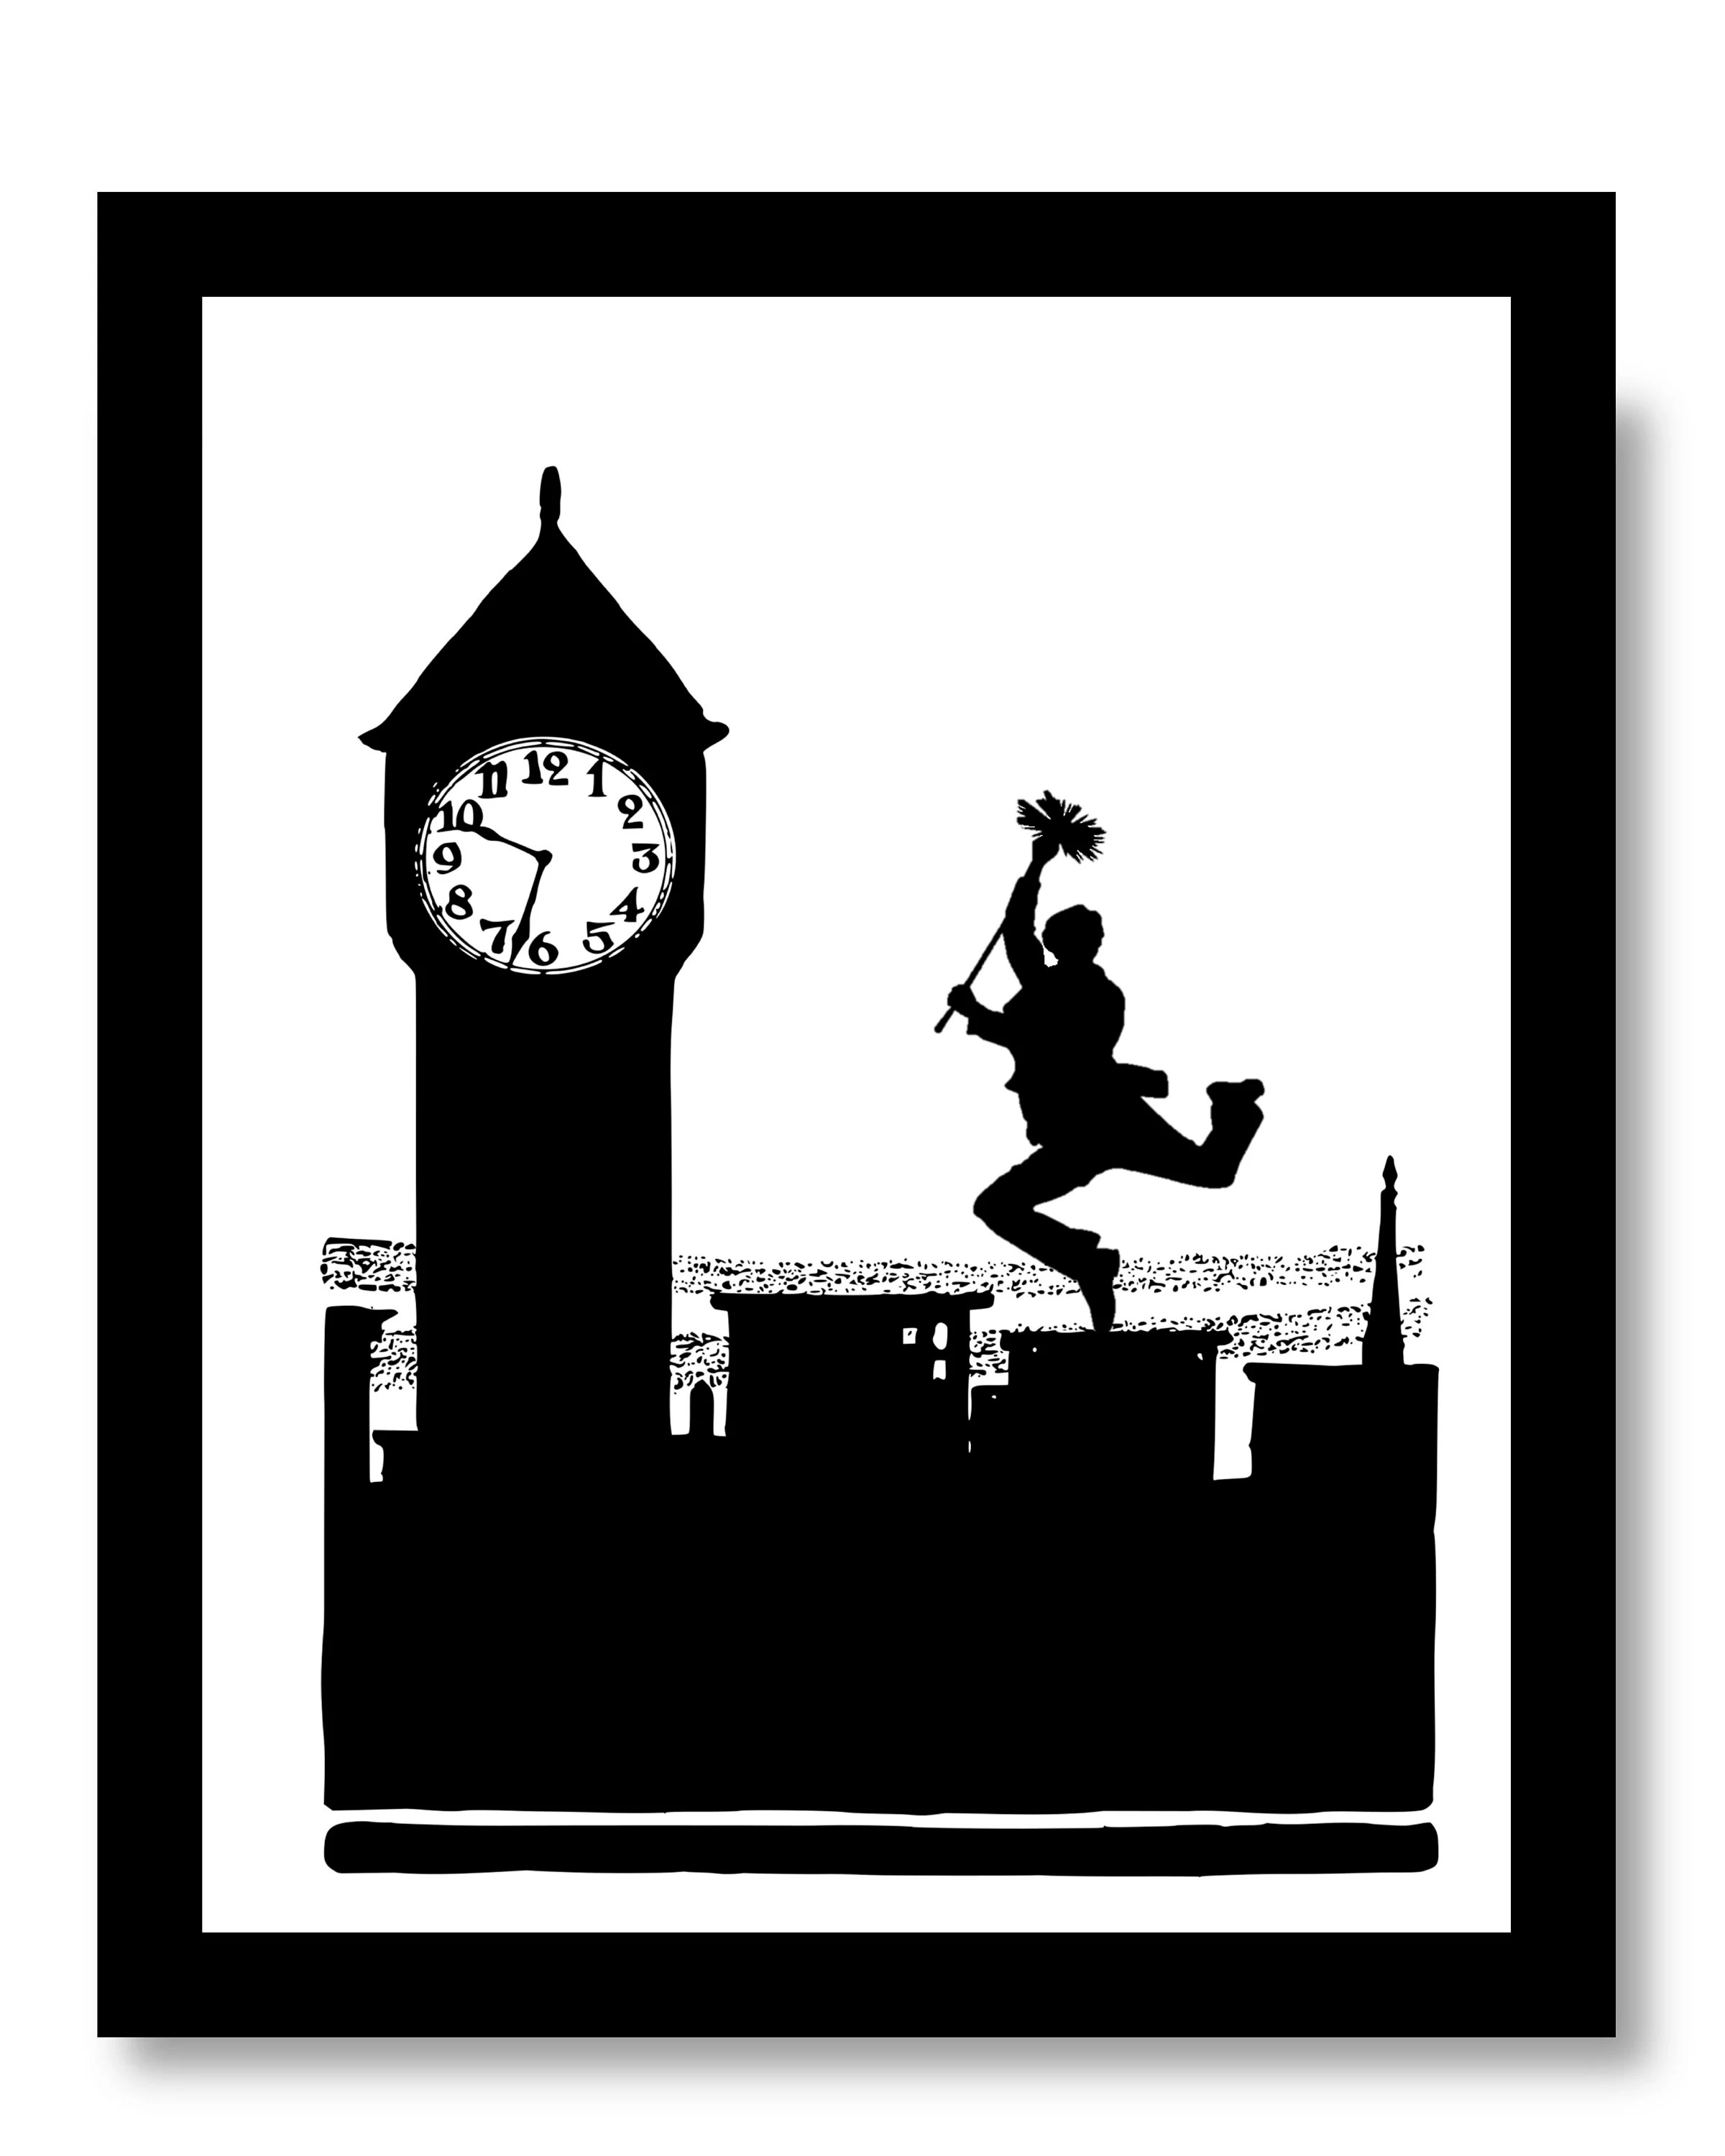 Mary Poppins Cheminée Bert Mary Poppins Mary Poppins Print Mur D Impression Mary Poppins Cheminée Balayer Bert Ramoneur Mary Poppins Decor Mary Poppins Imprime